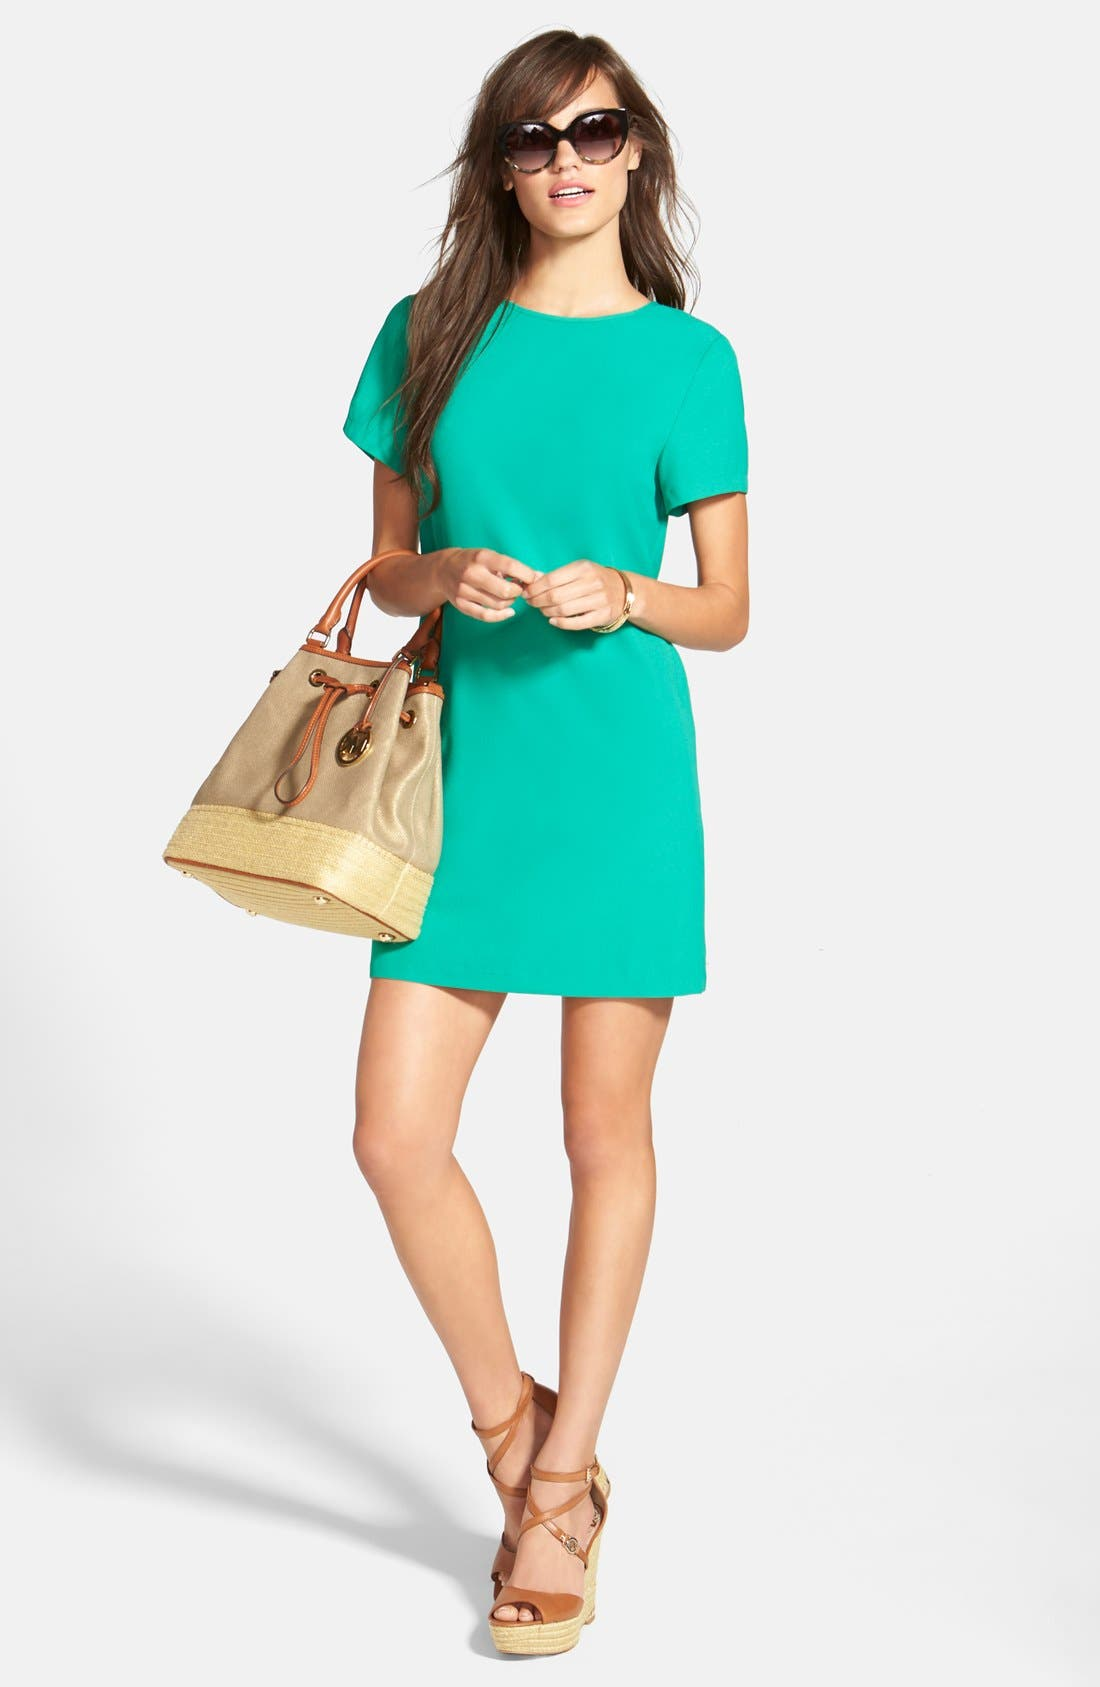 Felicity & Coco Crepe Shift Dress with Accessories